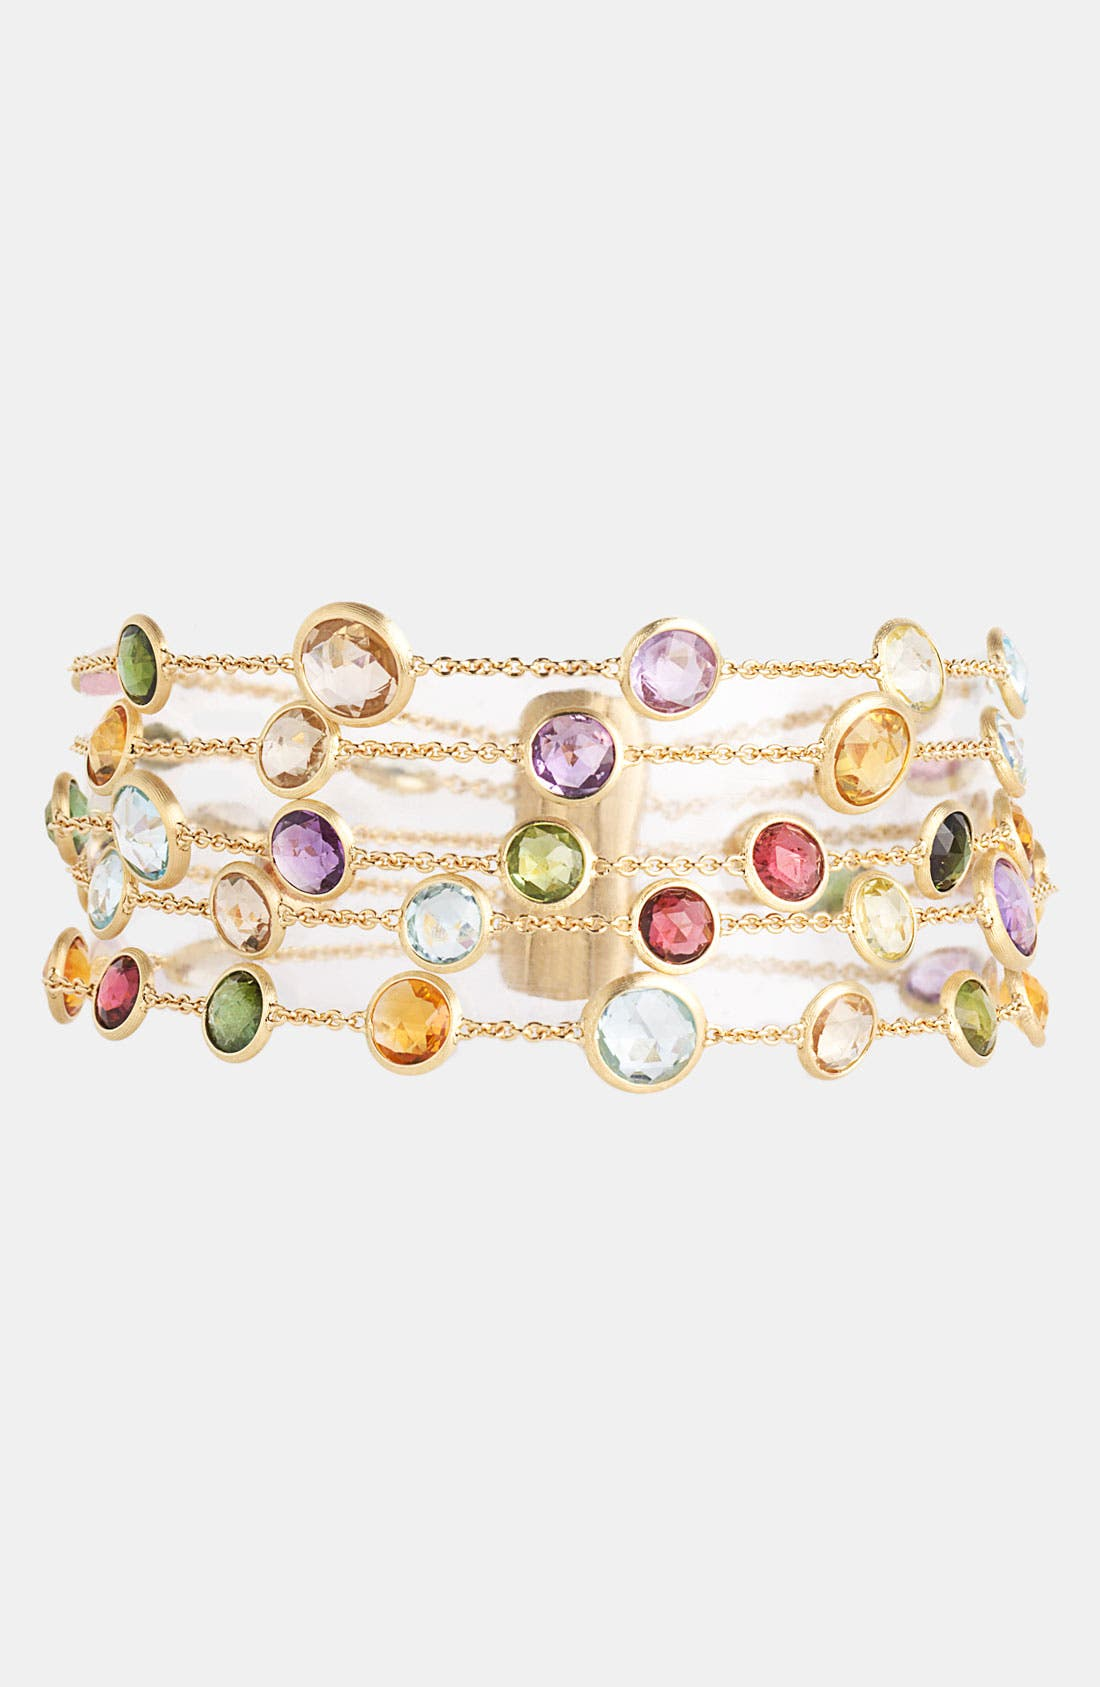 Alternate Image 1 Selected - Marco Bicego 'Mini Jaipur' 5-Strand Bracelet